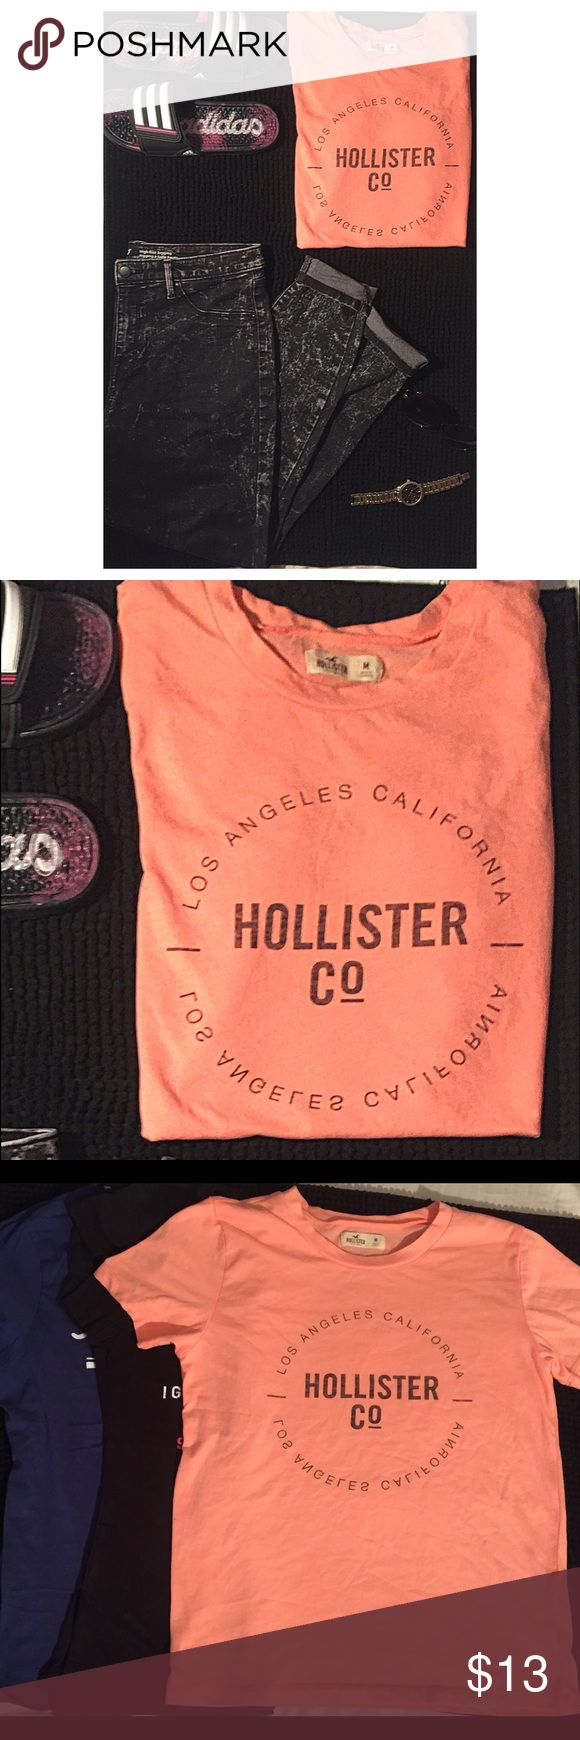 Hollister Tshirt This is a Hollister t-shirt. New without tags. Cotton breathable fabric. Short sleeved and size medium. New without tags. 😎 Tops Tees - Short Sleeve